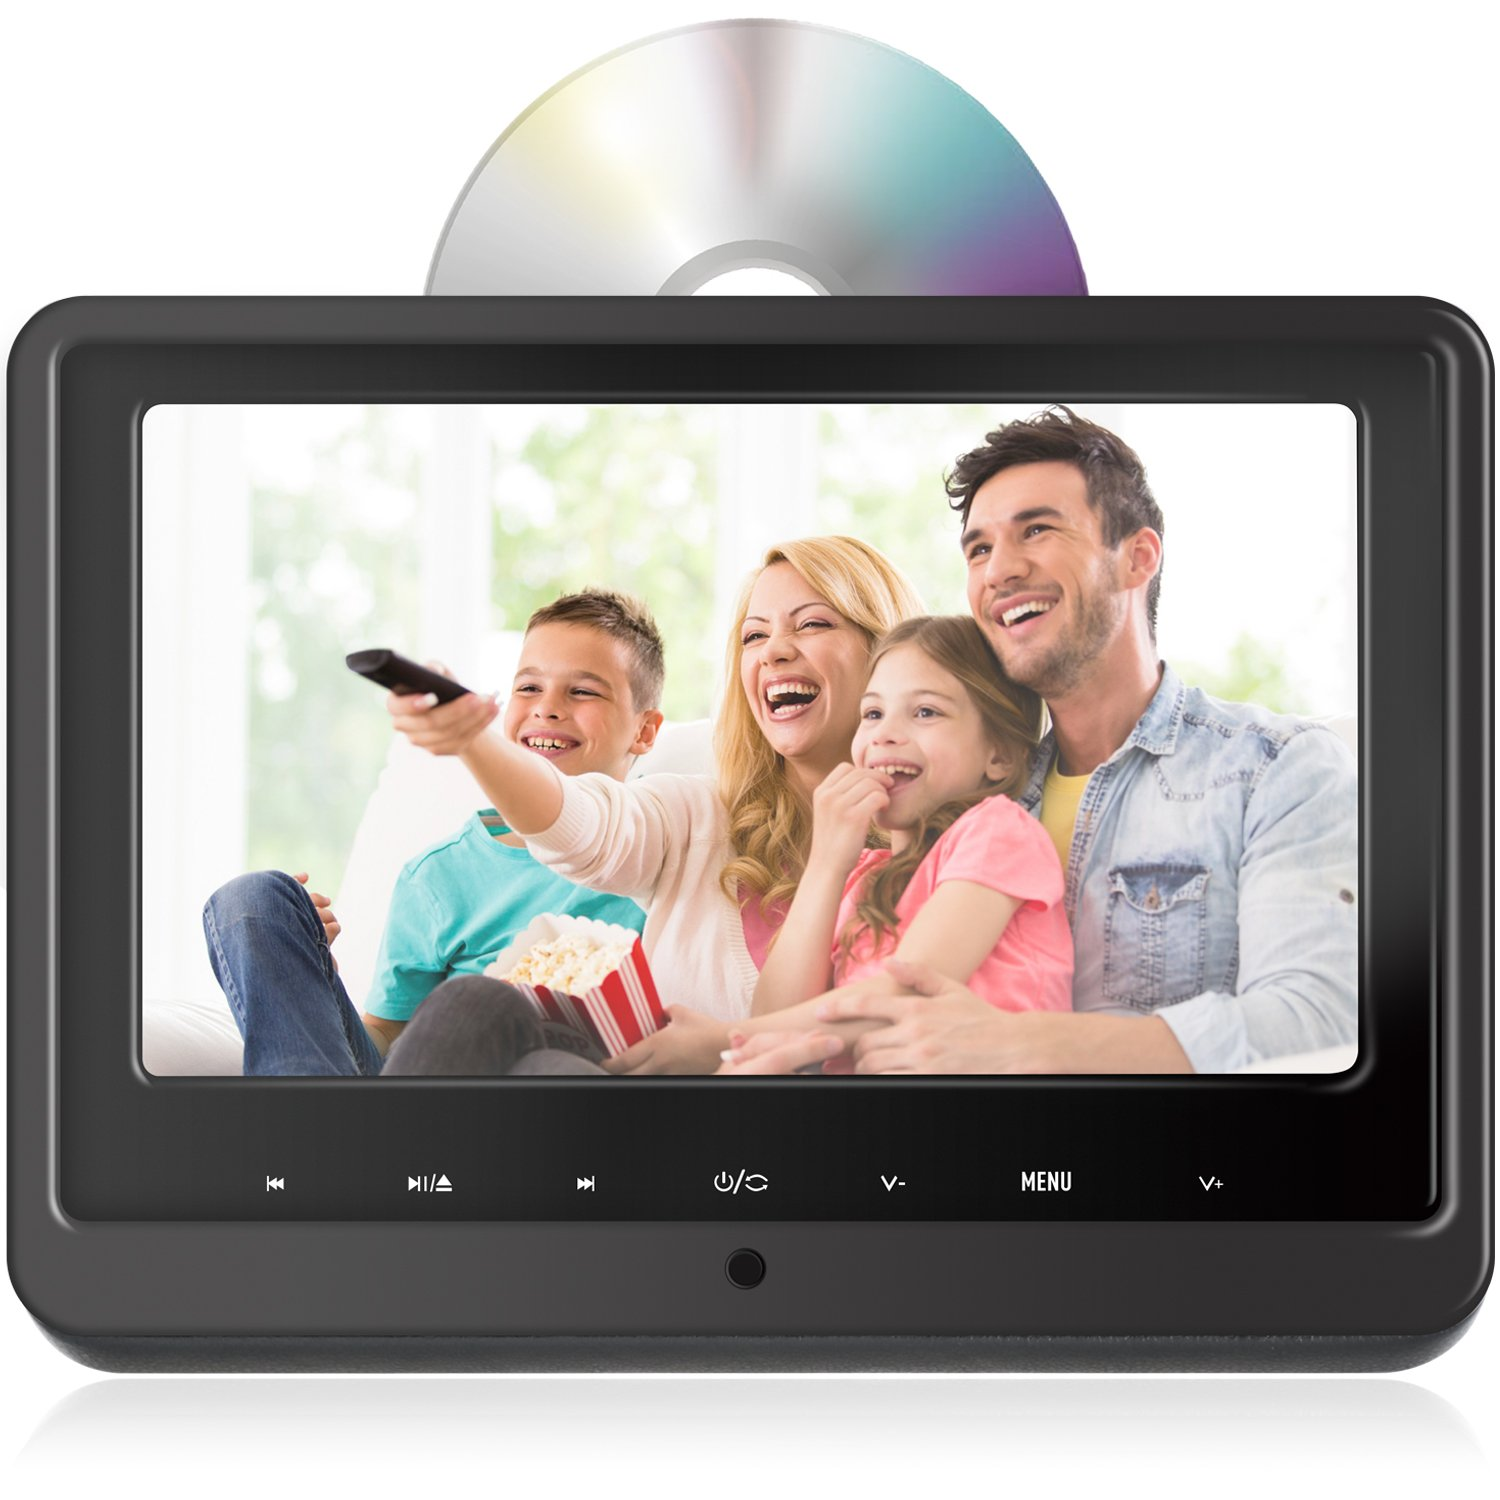 Headrest DVD Player for Car Can Use Both in Car or at Home as DVD Player eRapta EHD102 Second Generation by eRapta